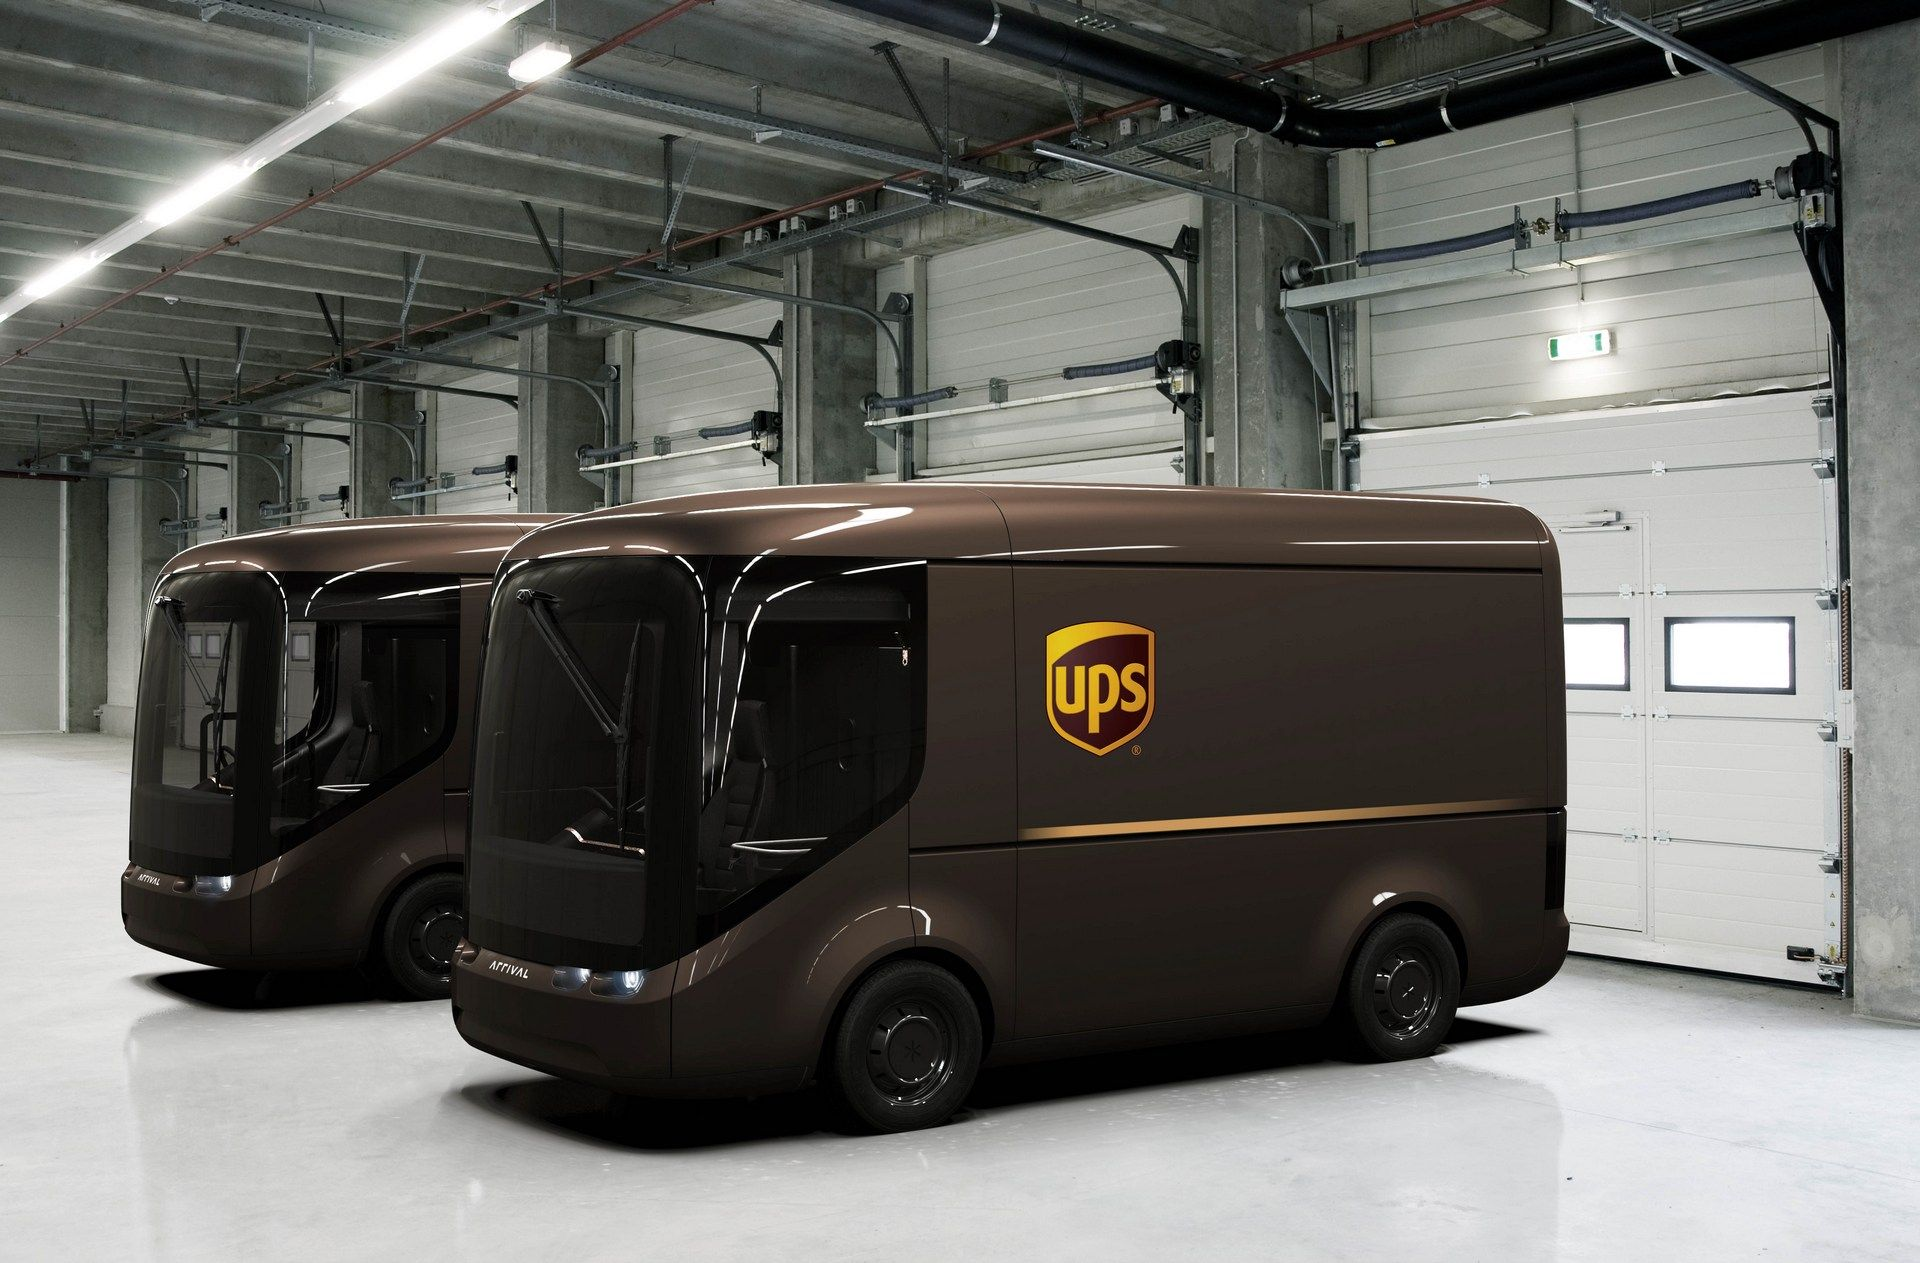 Paris & London Will Trial Electric UPS Delivery Vans